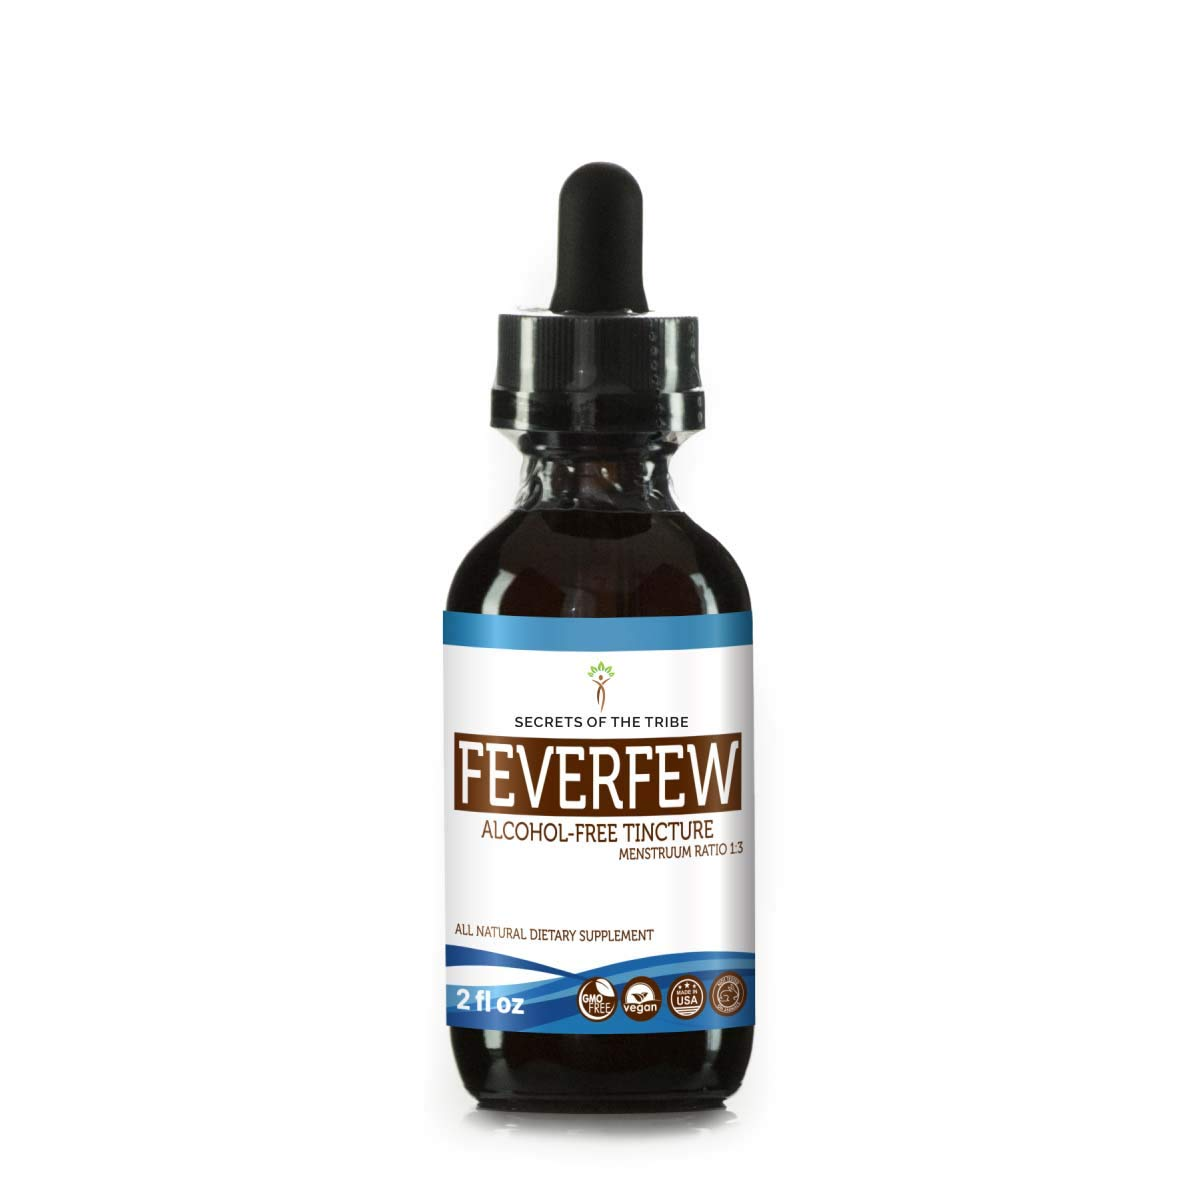 Amazon.com: Feverfew Tincture Alcohol-Free Liquid Extract, Organic Feverfew (Tanacetum parthenium) Dried Herb (4 FL OZ): Health & Personal Care